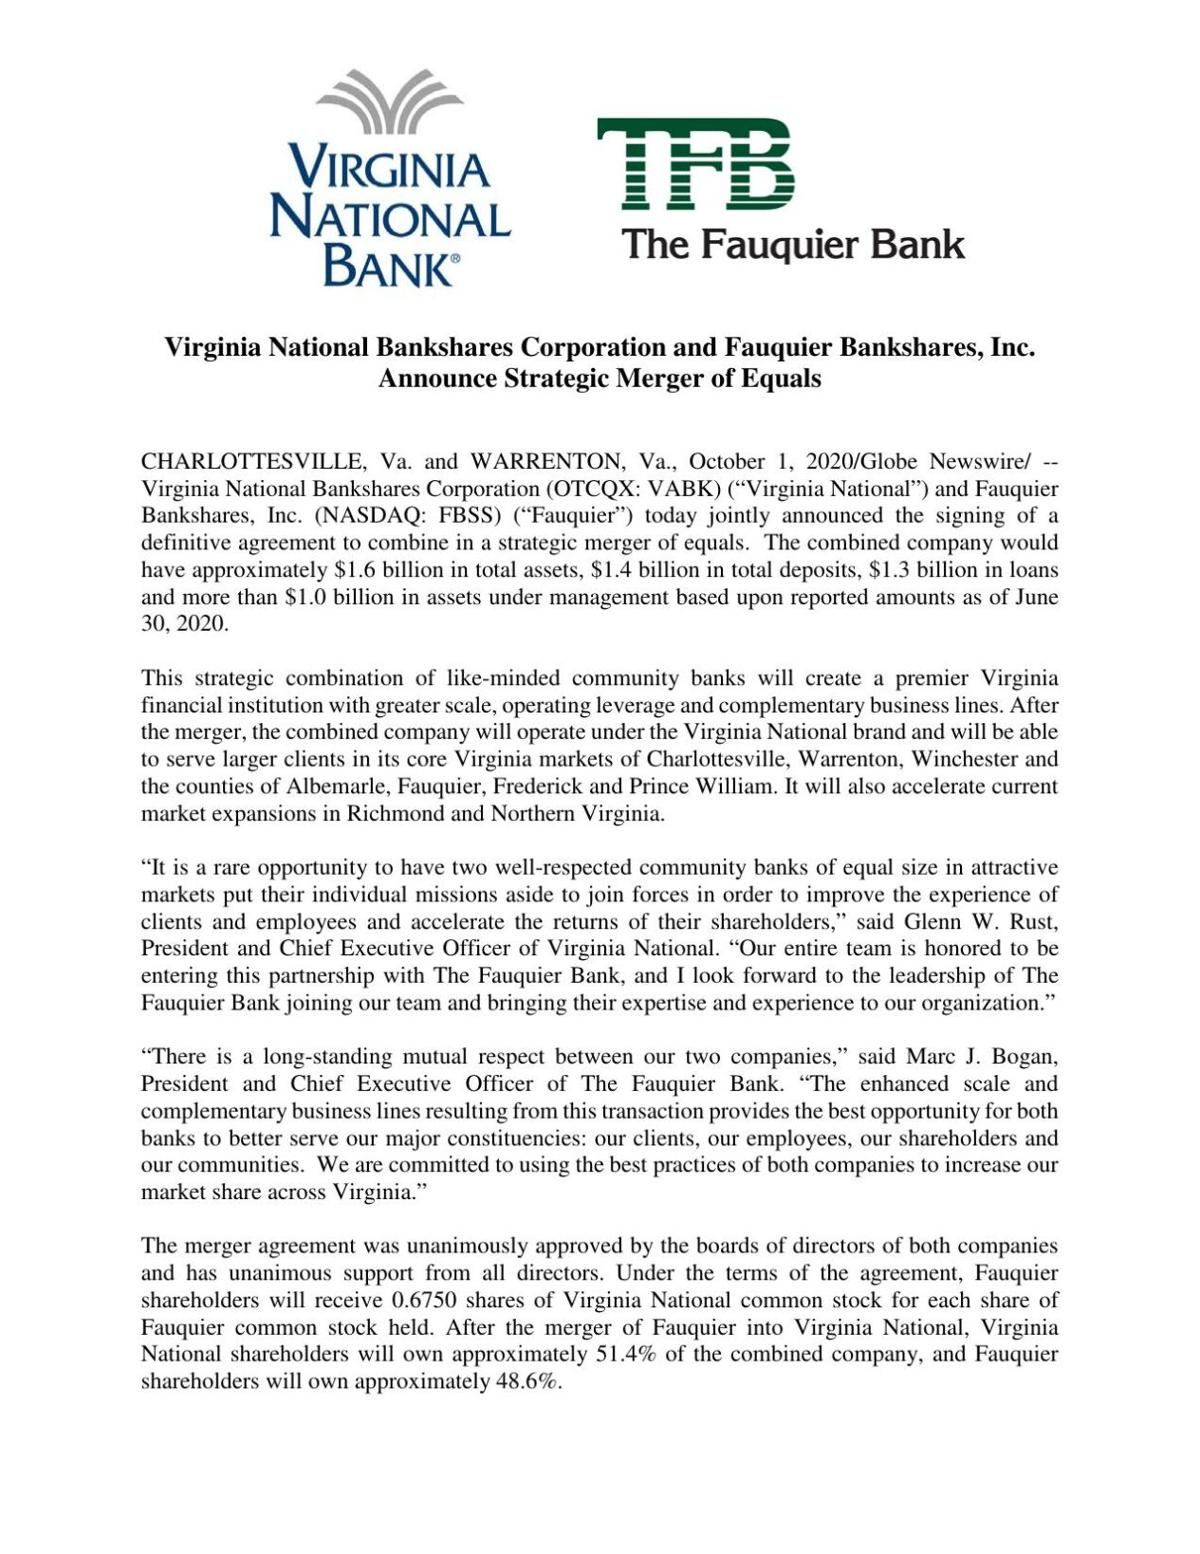 2020_10_01 The Fauquier Bank merger press release